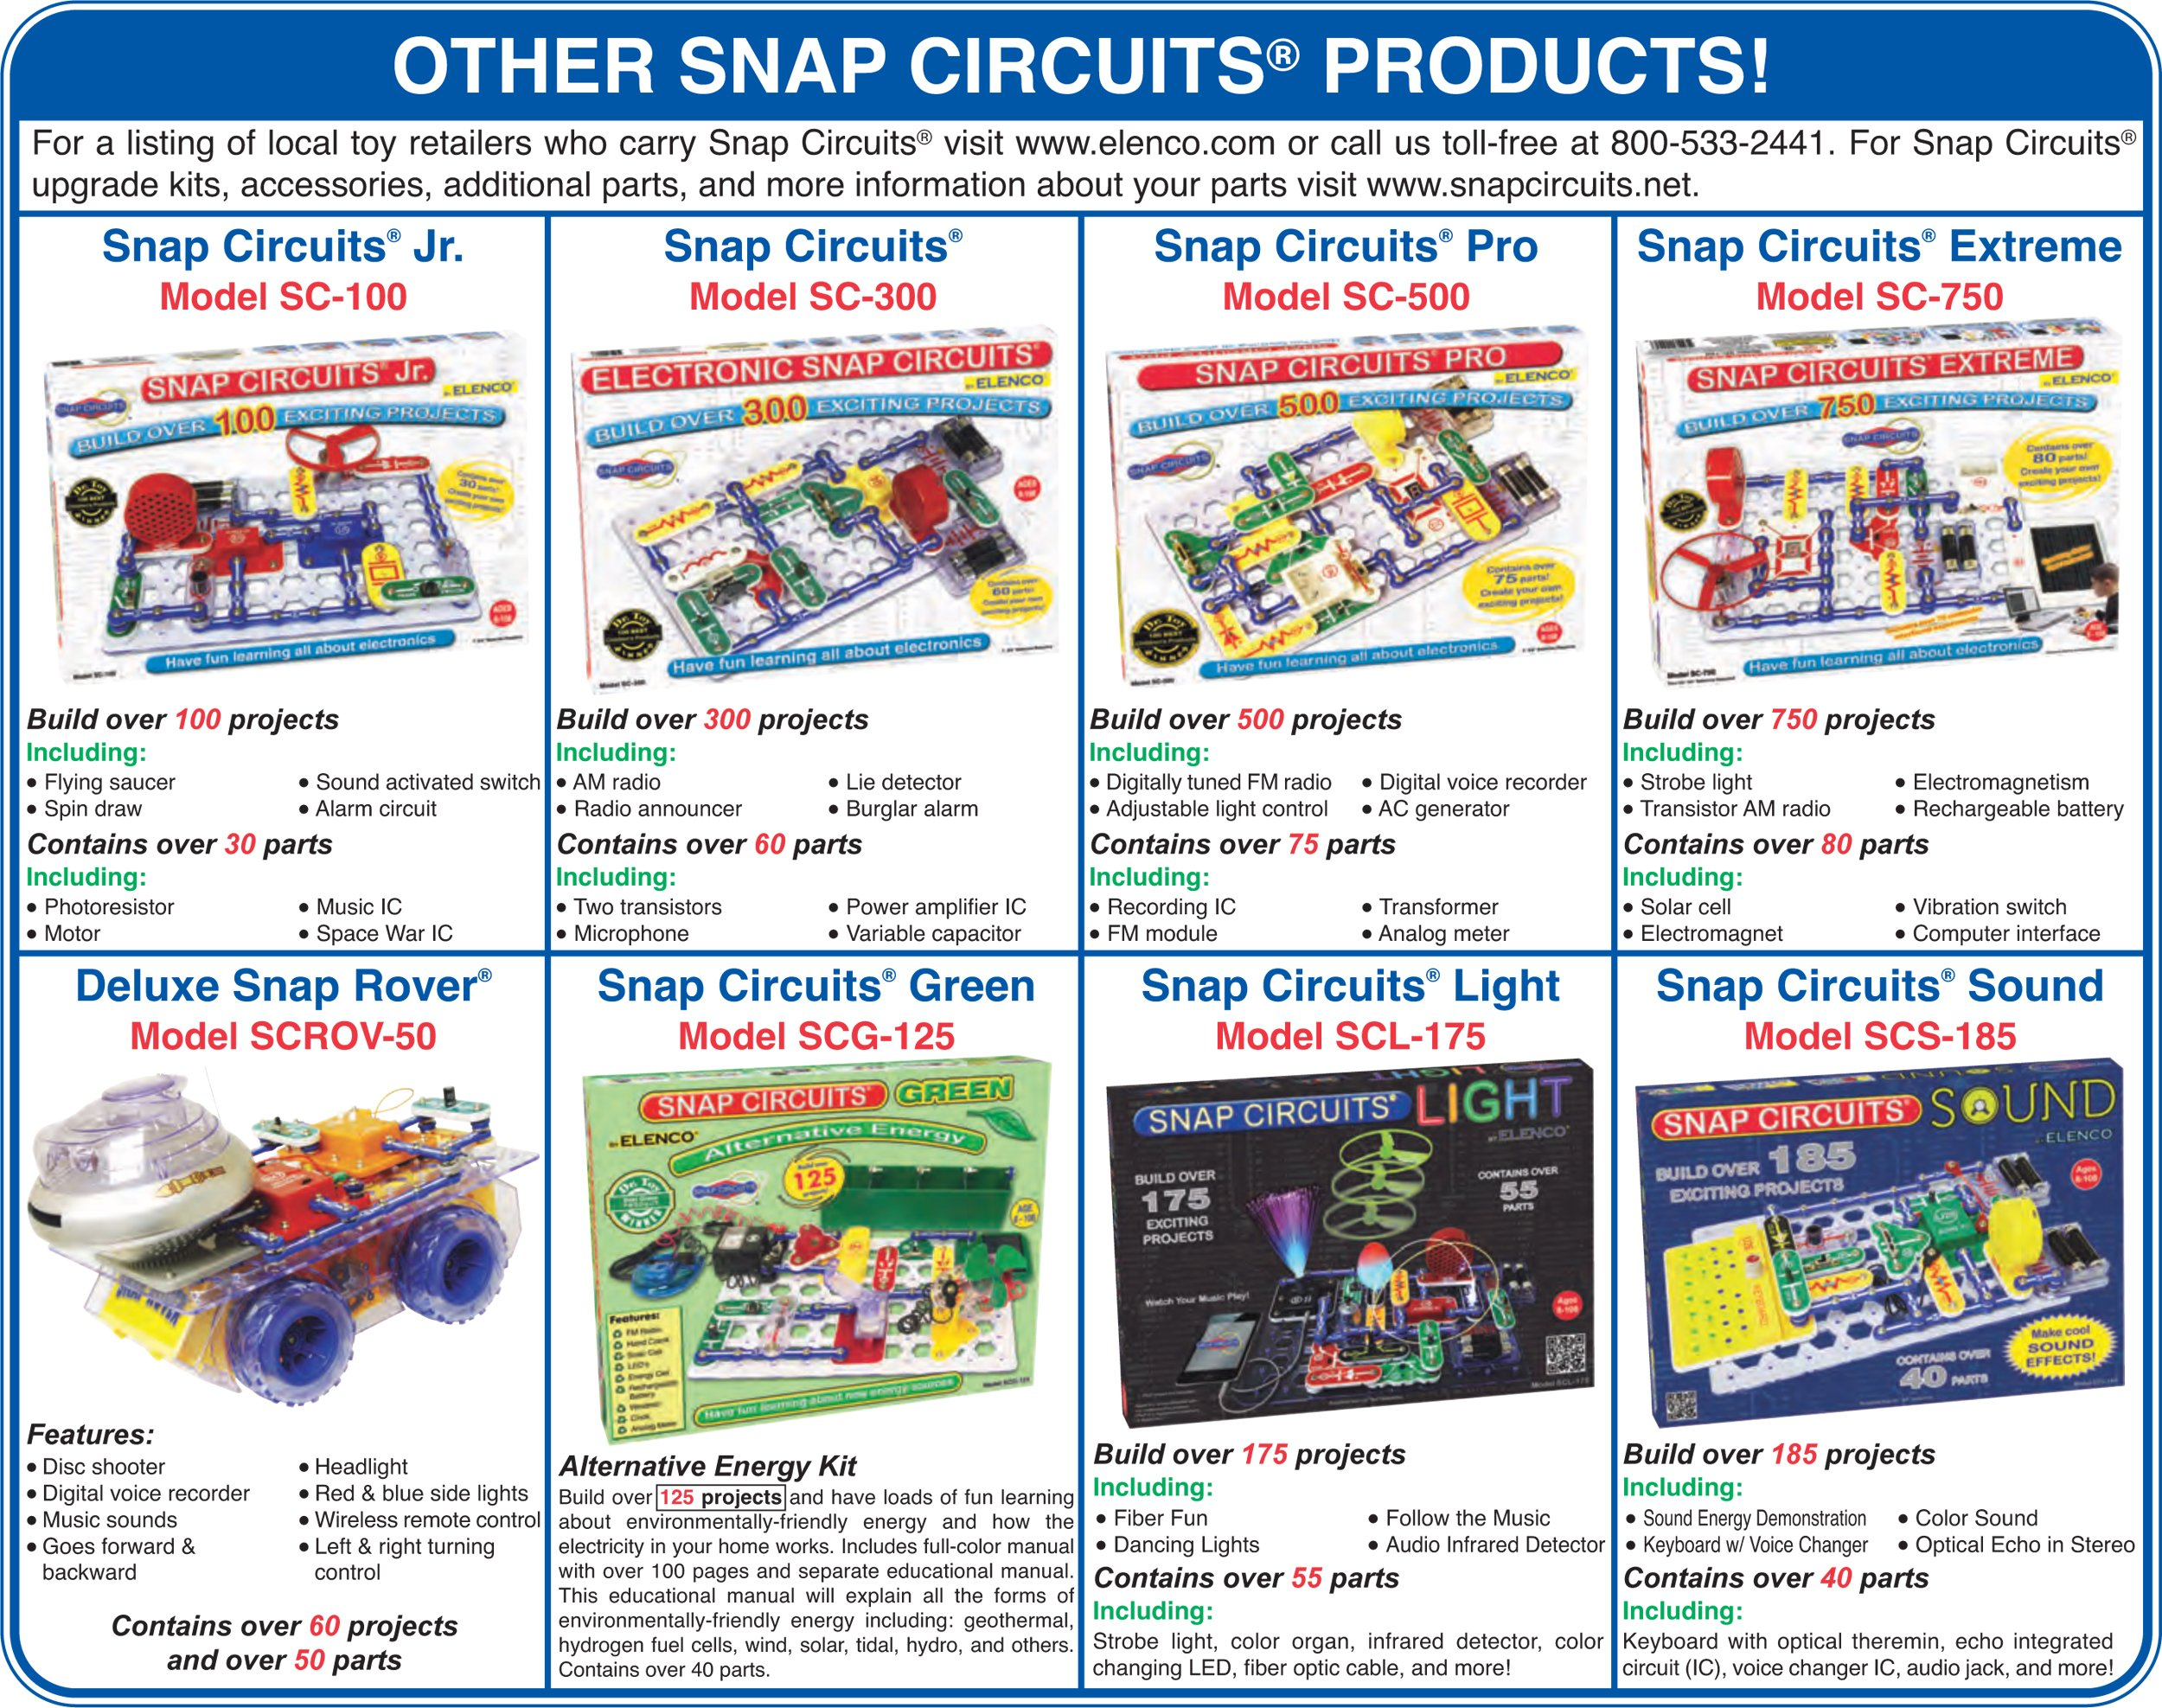 Snap Circuits Motion Electronics Exploration Kit | Over 165 Exciting STEM Projects | 4-Color Project Manual | 50+ Snap Modules | Unlimited Fun by Snap Circuits (Image #8)